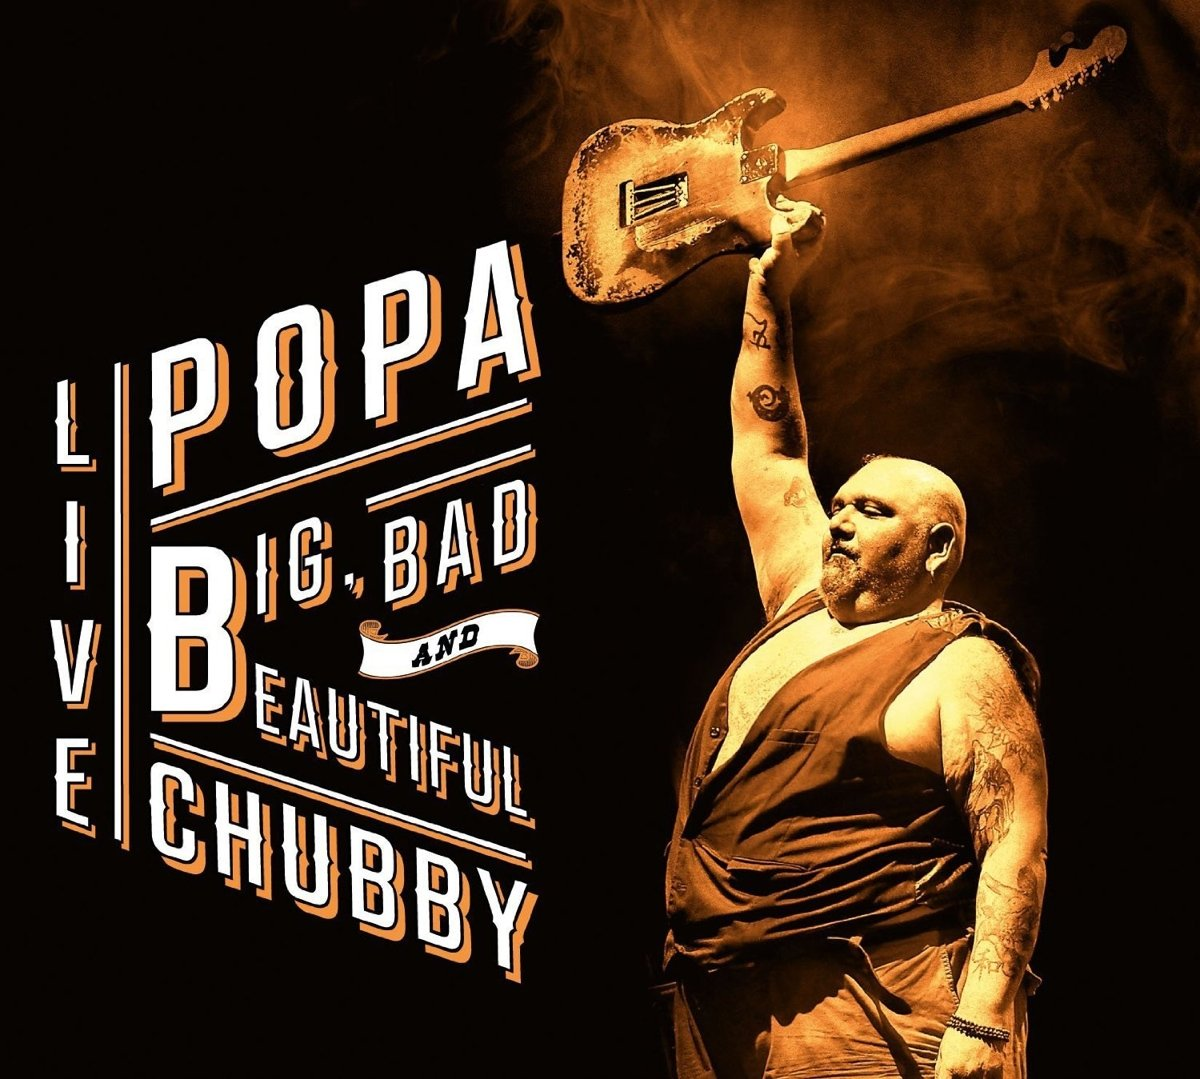 Big, Bad & Beautiful : Popa Chubby: Amazon.fr: Musique